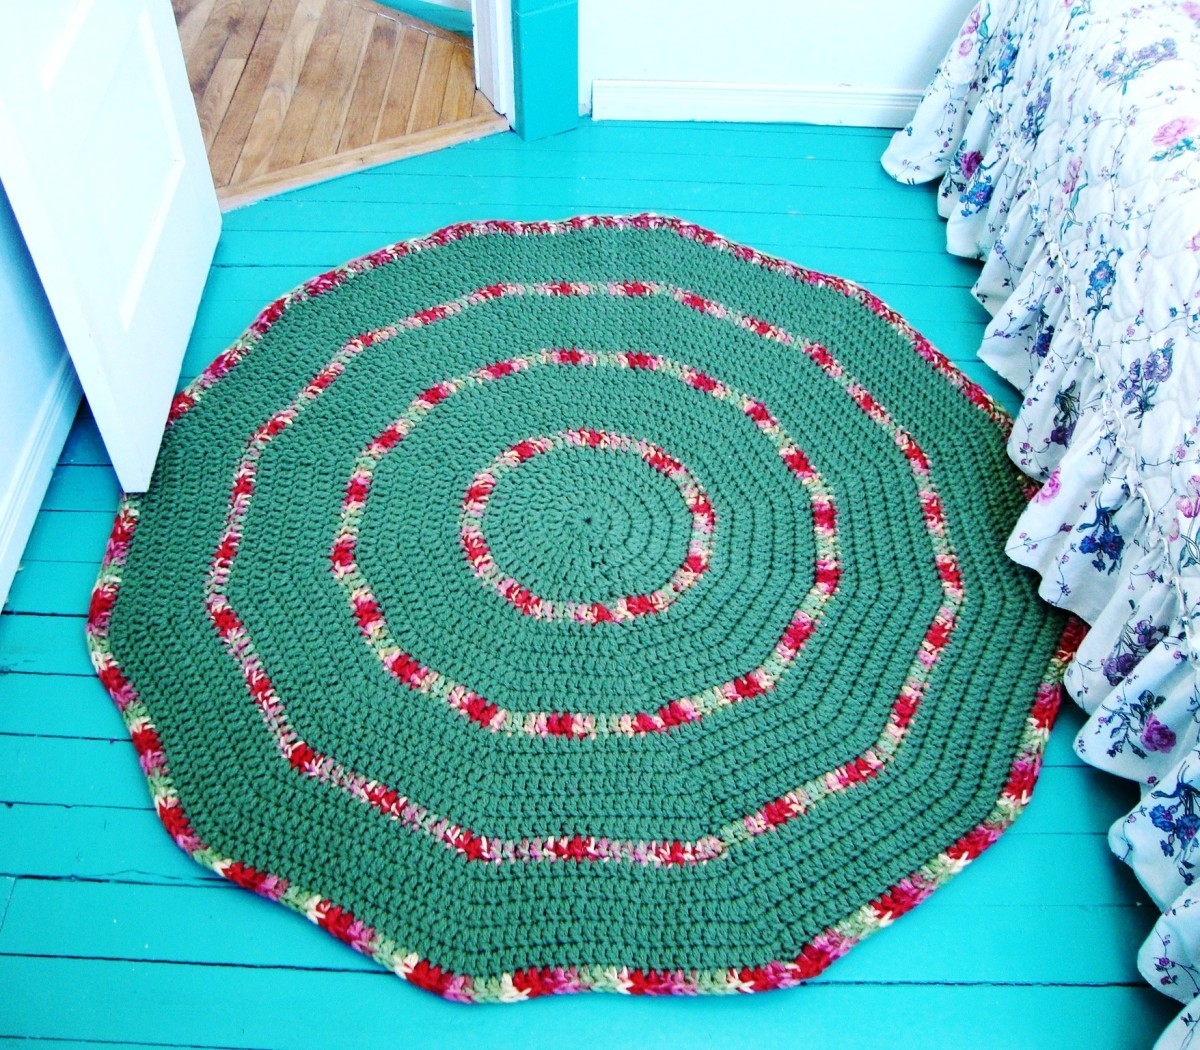 A bulky yarn is used to make a crocheted rug.